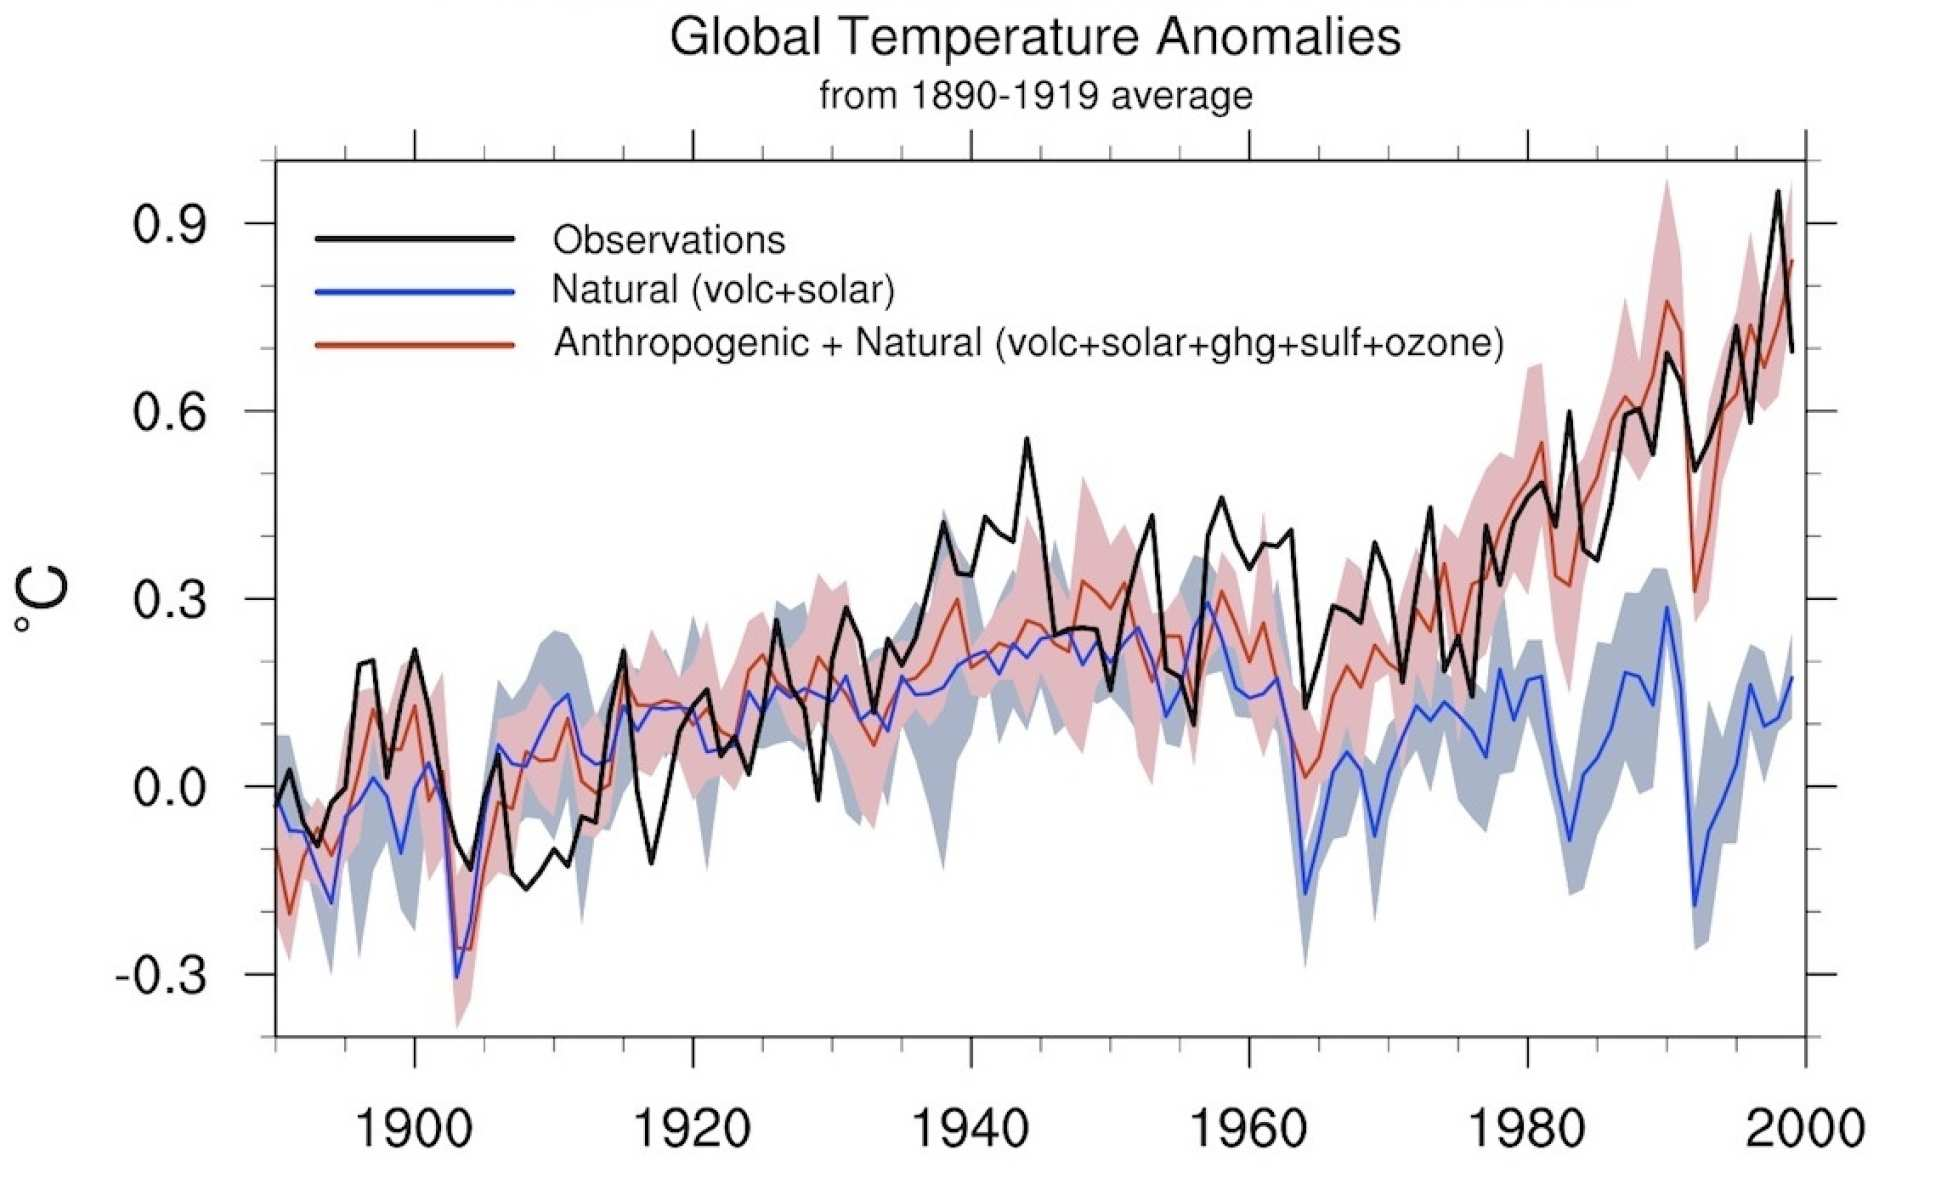 A figure showing global temperature difference relative to the 1890-1919 baseline. It shows the observed temperature difference until year 2000, a simulation of what the temperature difference would have been if only natural forces were taken into account, and a simulated temperature difference if both human and natural factors are taken into account. It reveals how the average global temperature increase can only be explained when human factors are taken into account.